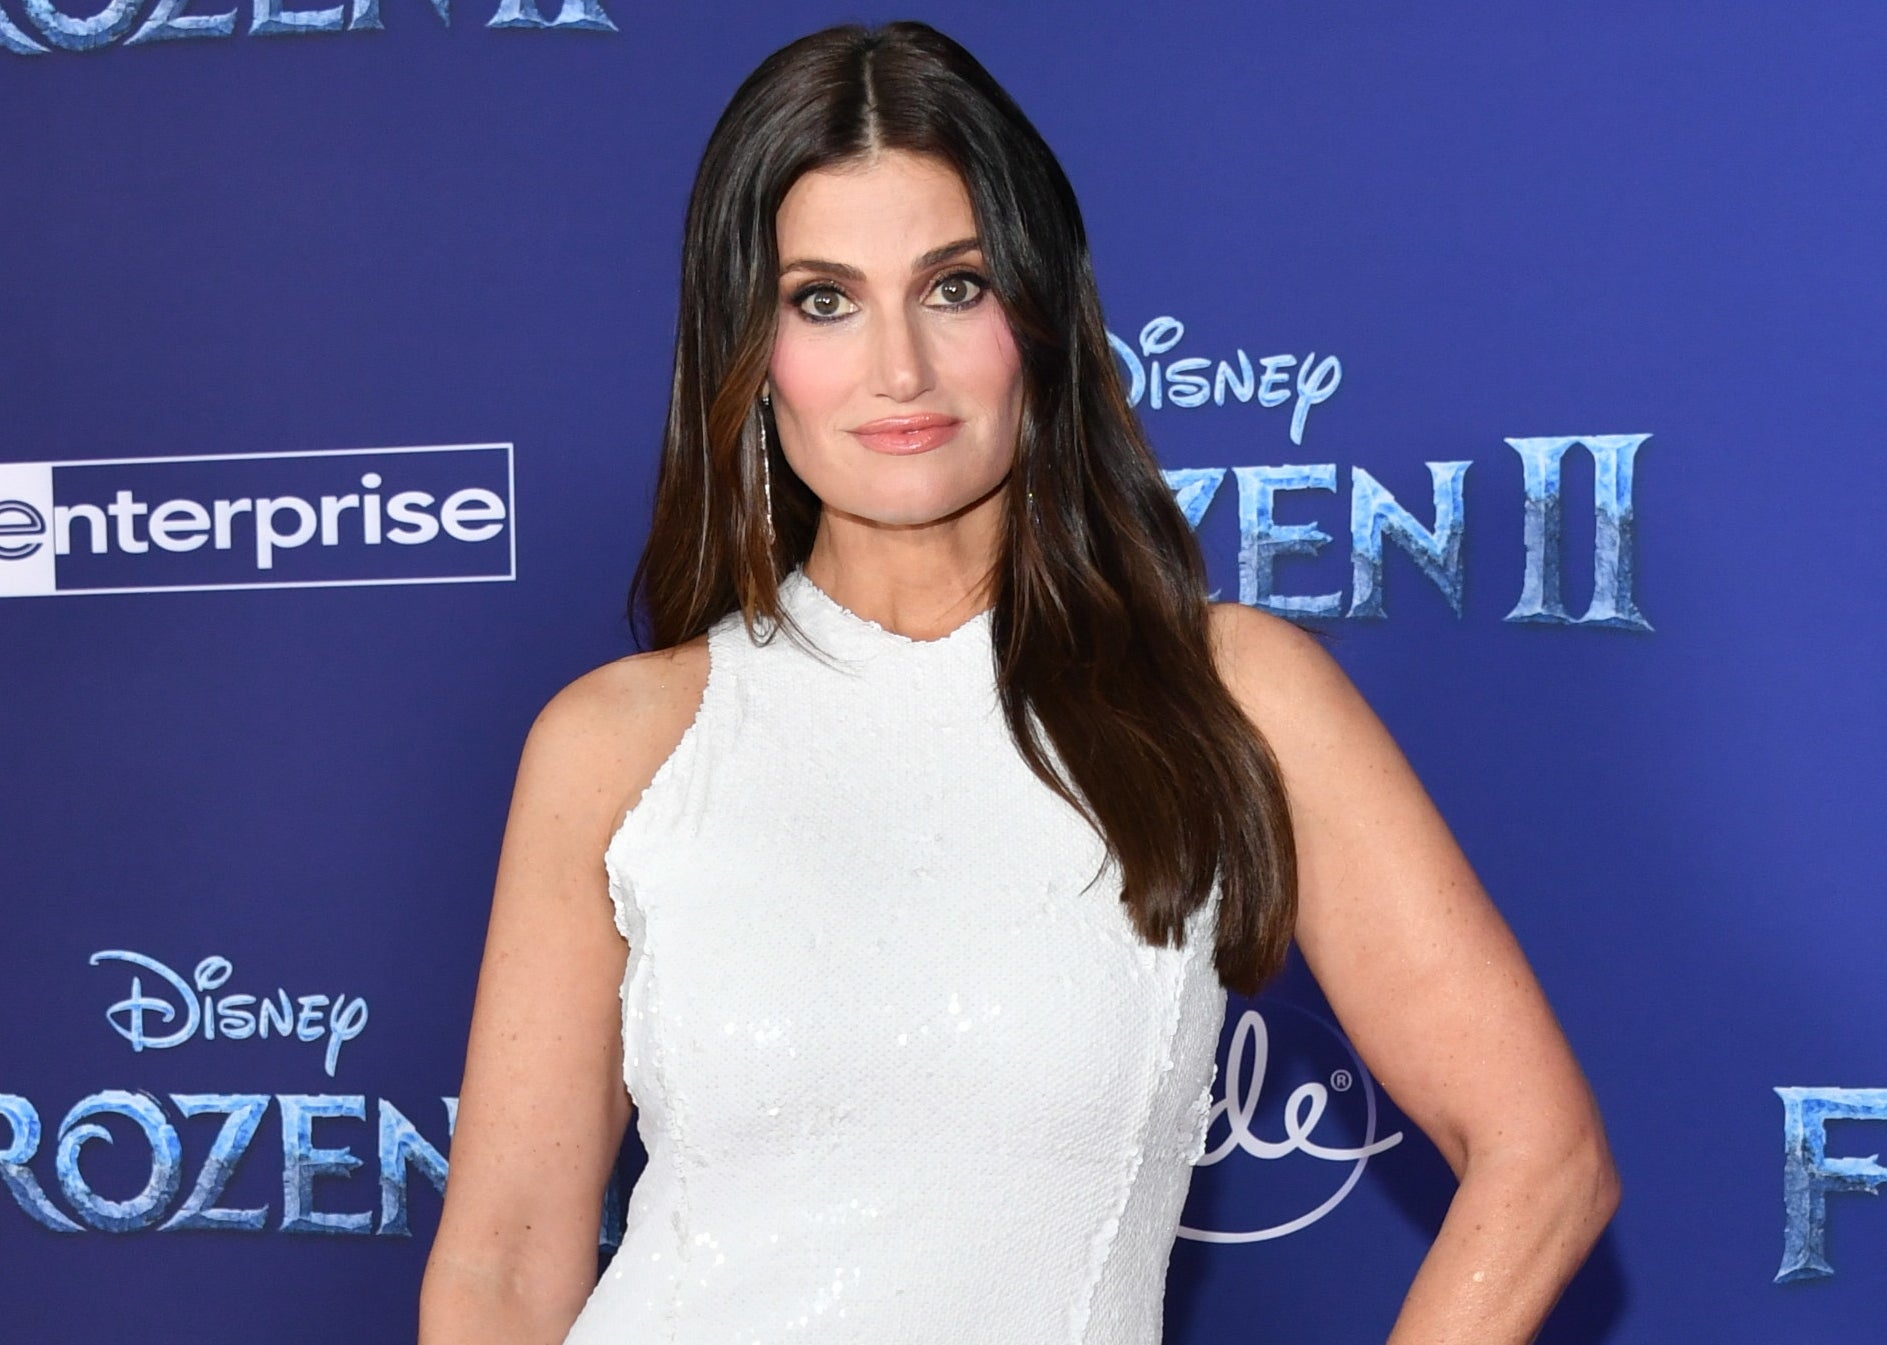 Idina poses in a white gown at a premiere